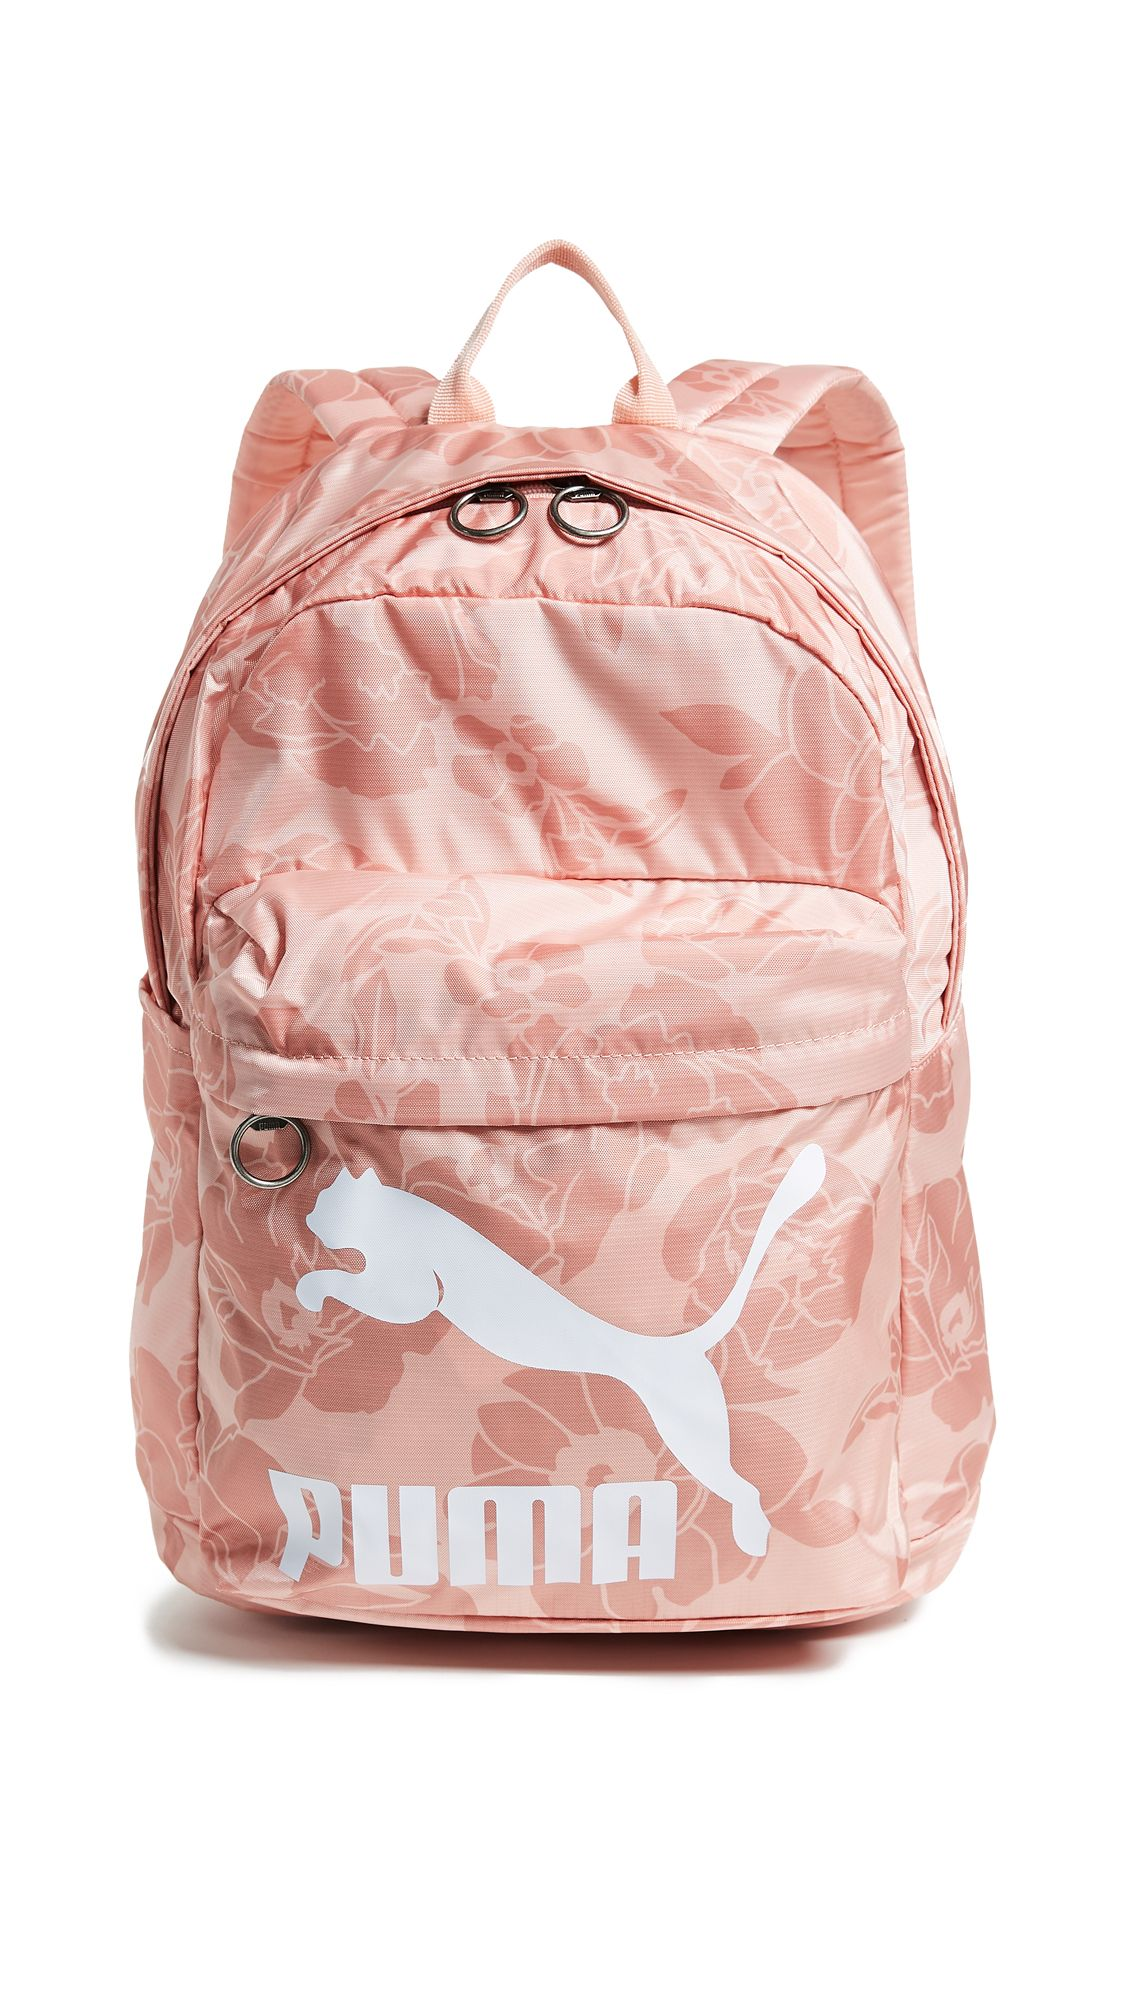 fddbabe217 PUMA ORIGINALS BACKPACK.  puma  bags  nylon  backpacks